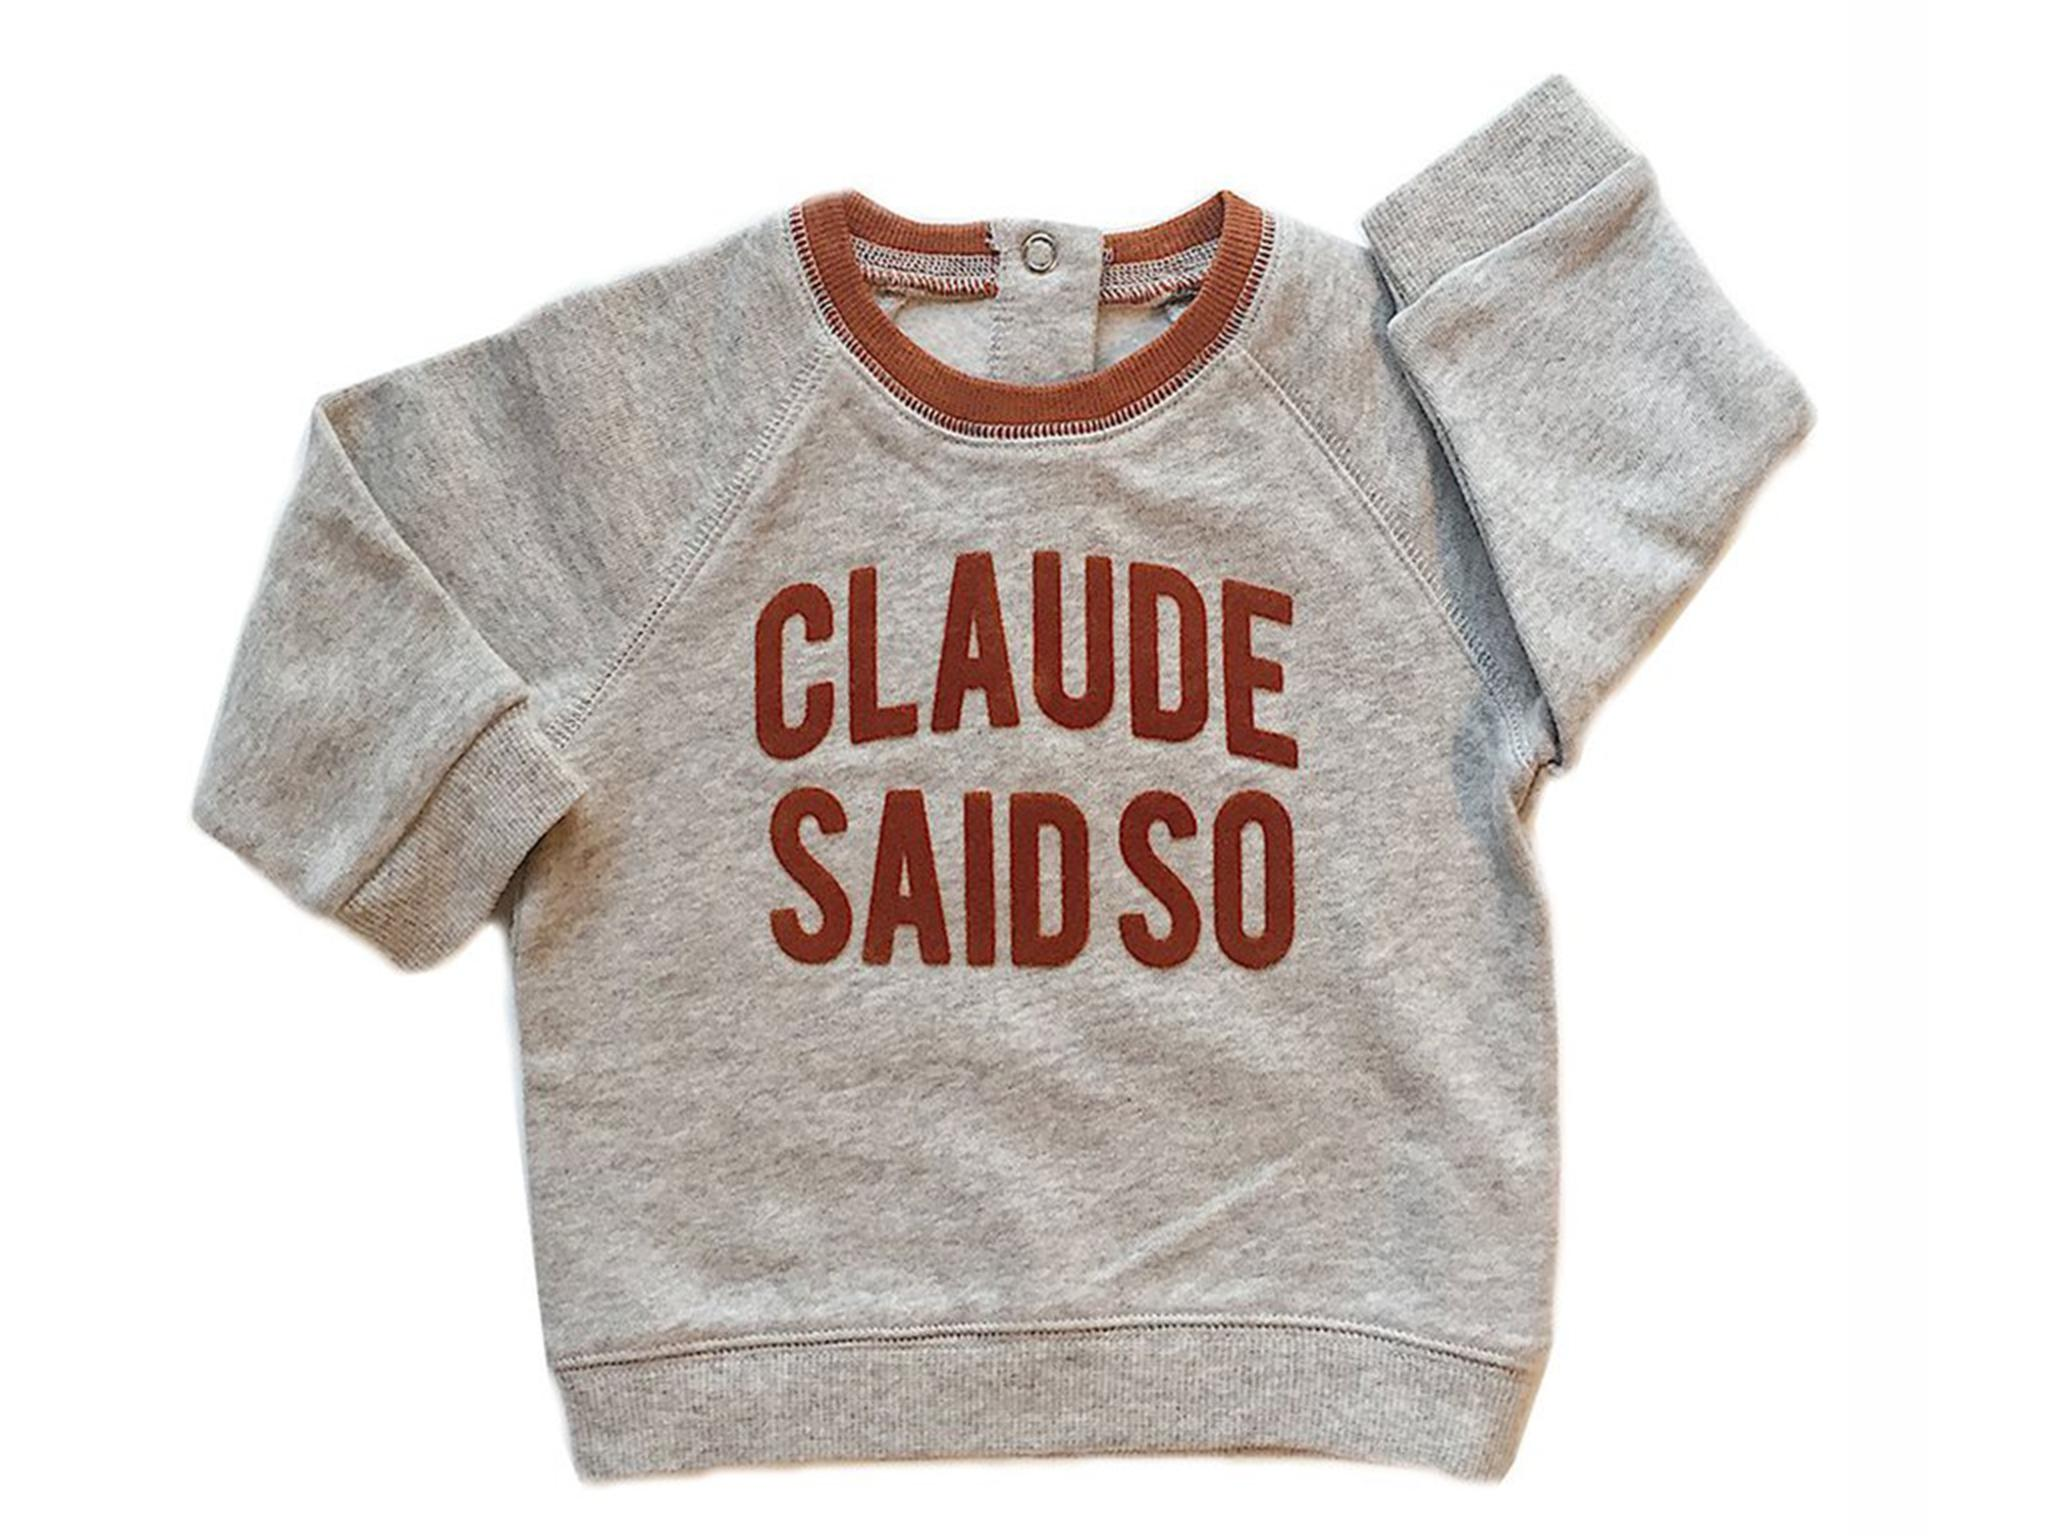 10 Best Brands For Gender Neutral Baby Clothes The Independent Mom N Bab Sweater Orange Fox Softest Sweatshirt Babies And Toddlers Its 100 Cotton Brushed Fleece Inside Which Means It Feels Like Velvet There Are Poppers At Neck